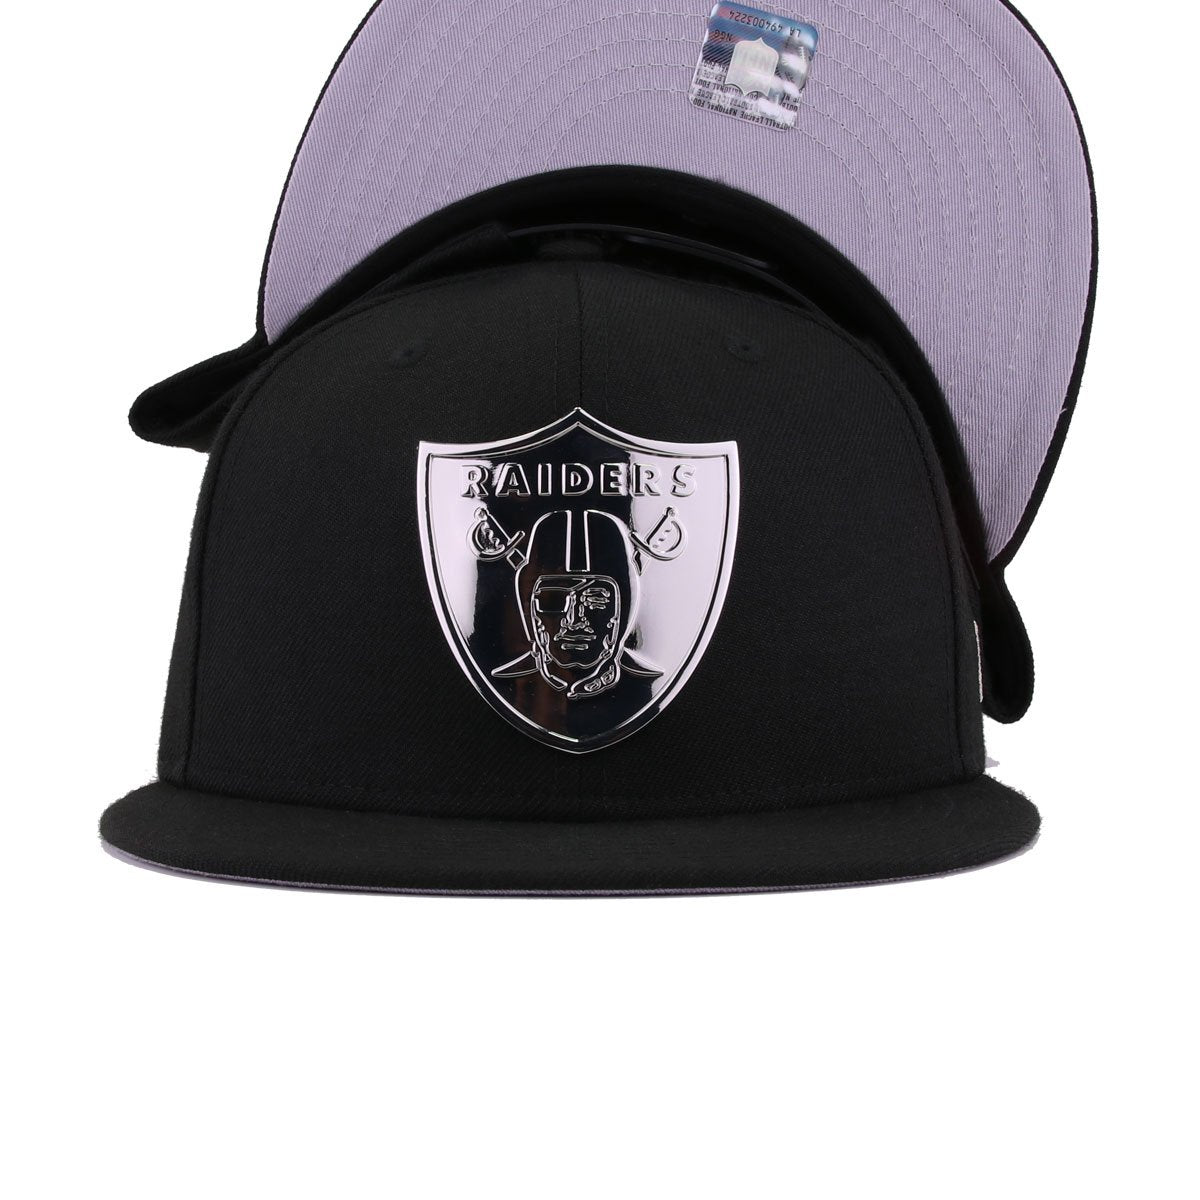 Oakland Raiders Black Silver Metal Badge New Era 9Fifty Snapback